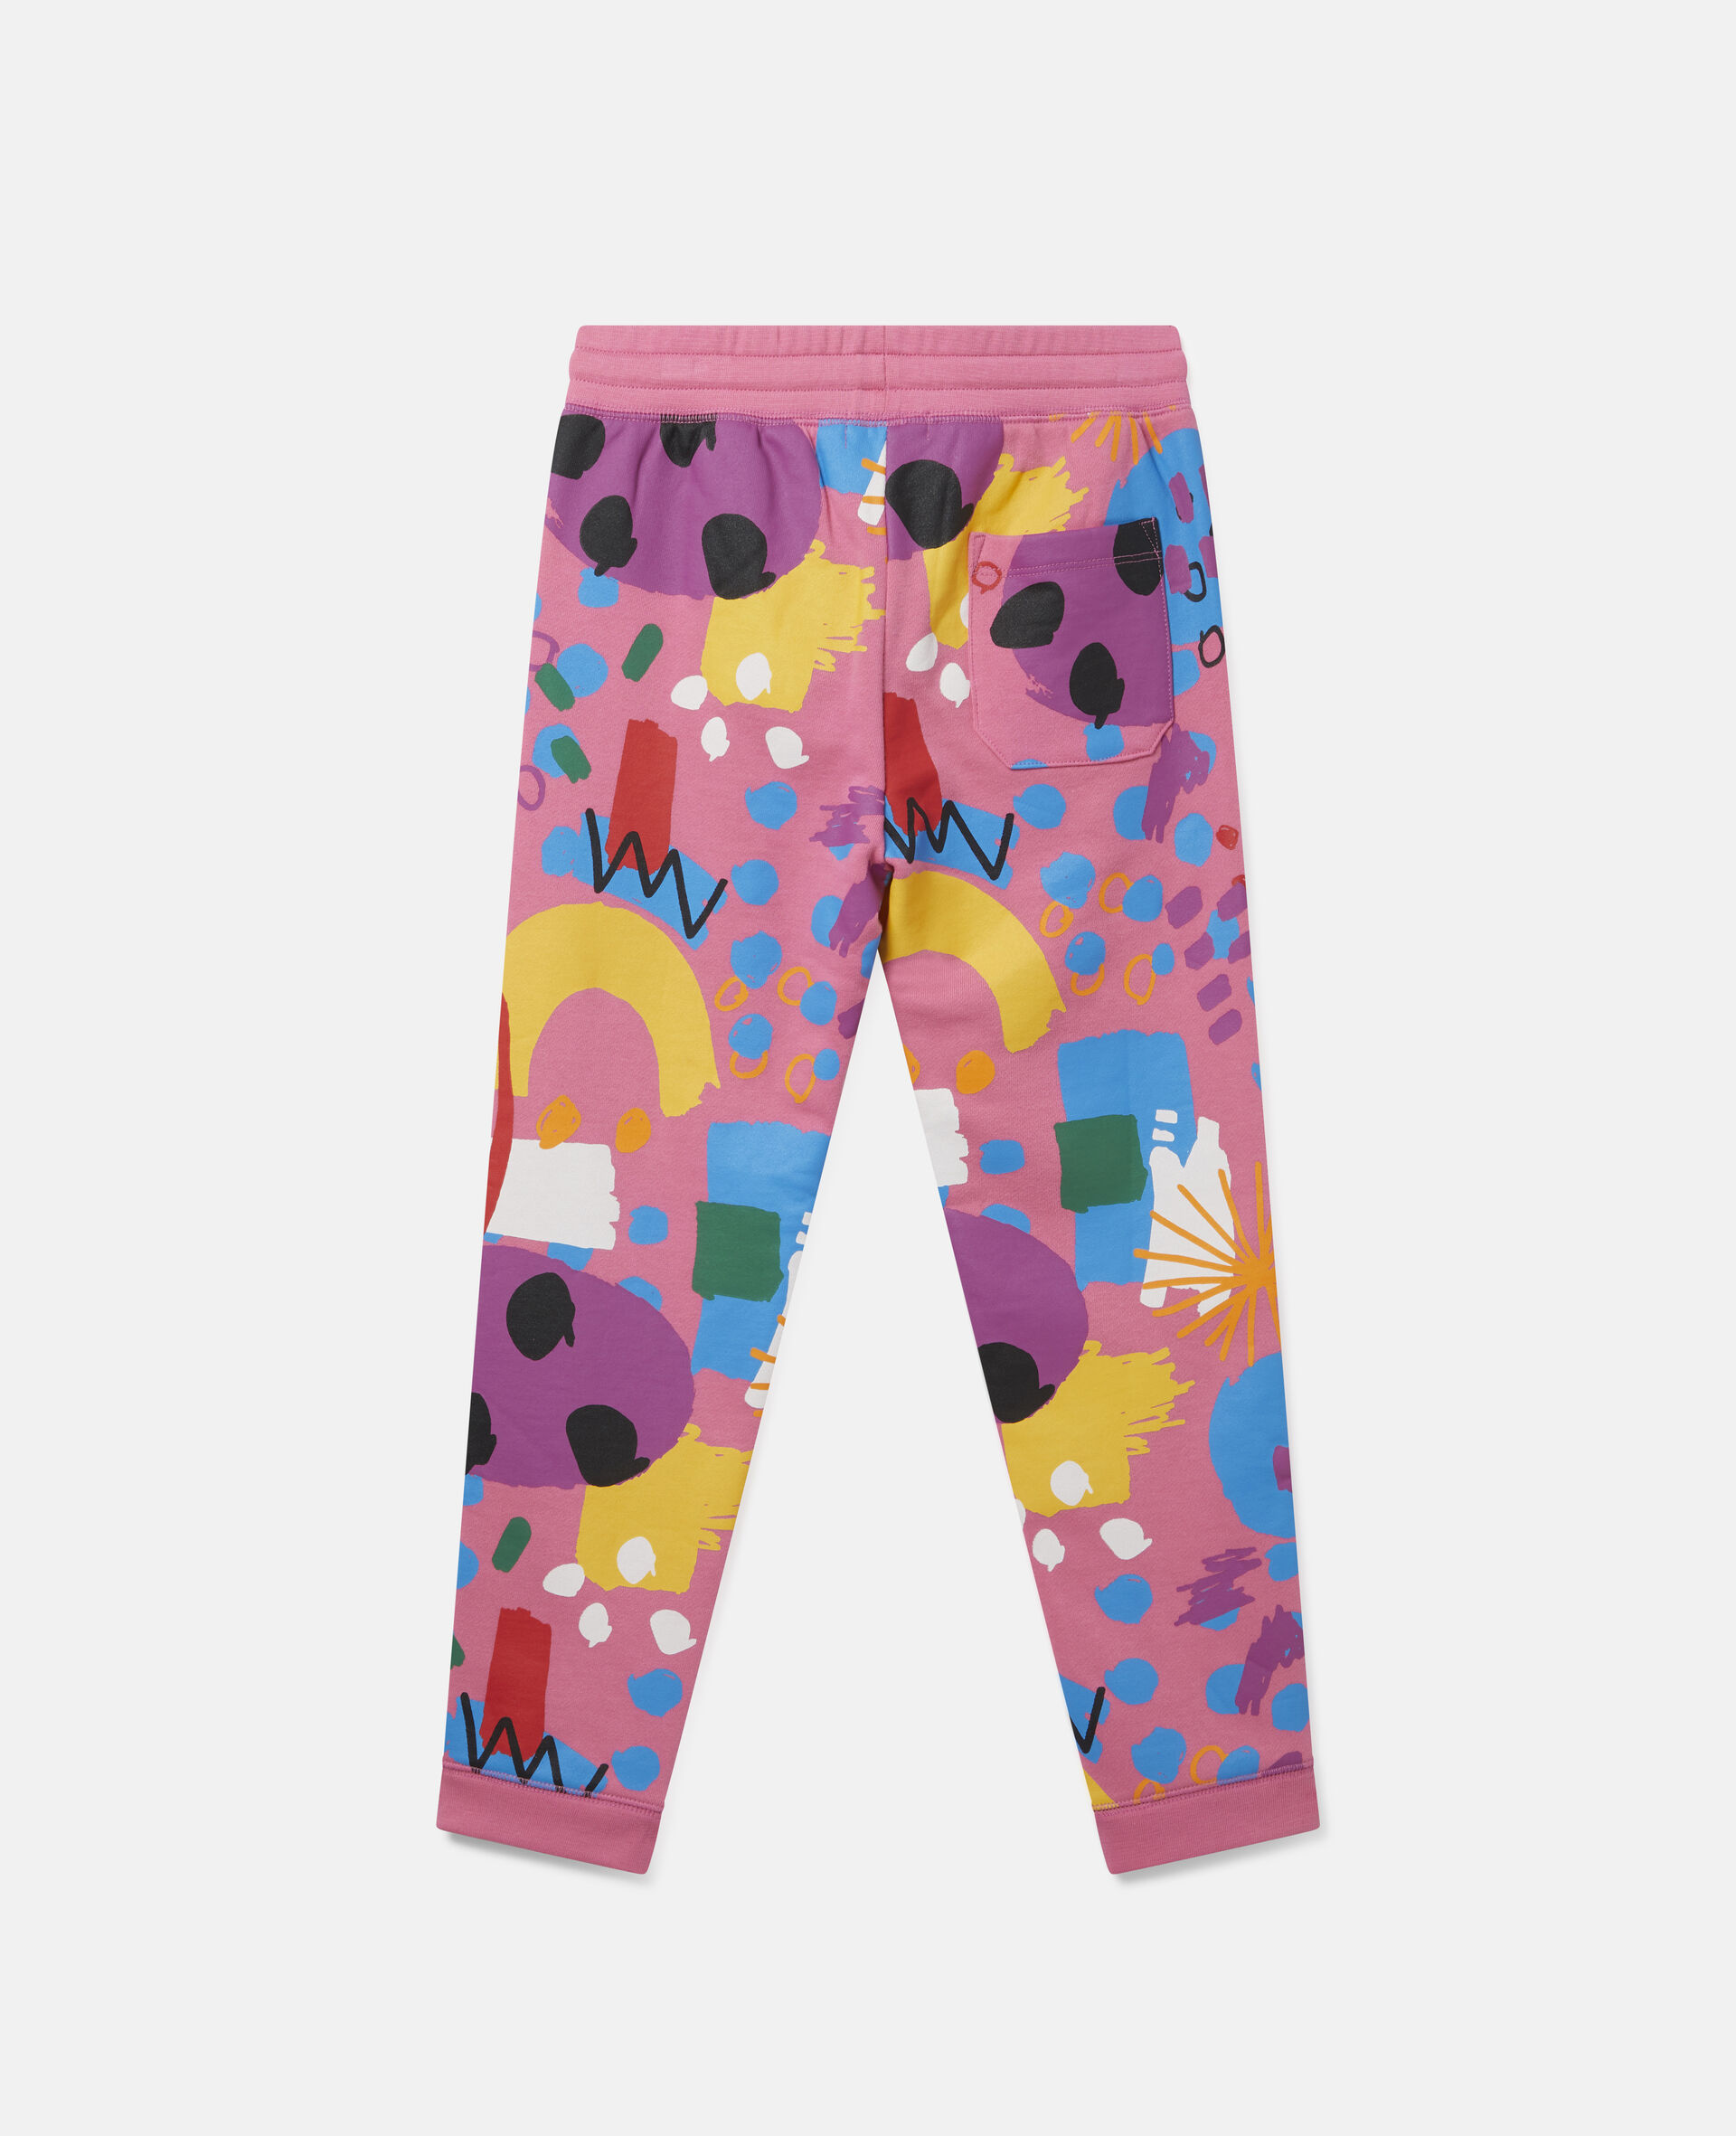 Painting Cotton Fleece Joggers-Pink-large image number 3